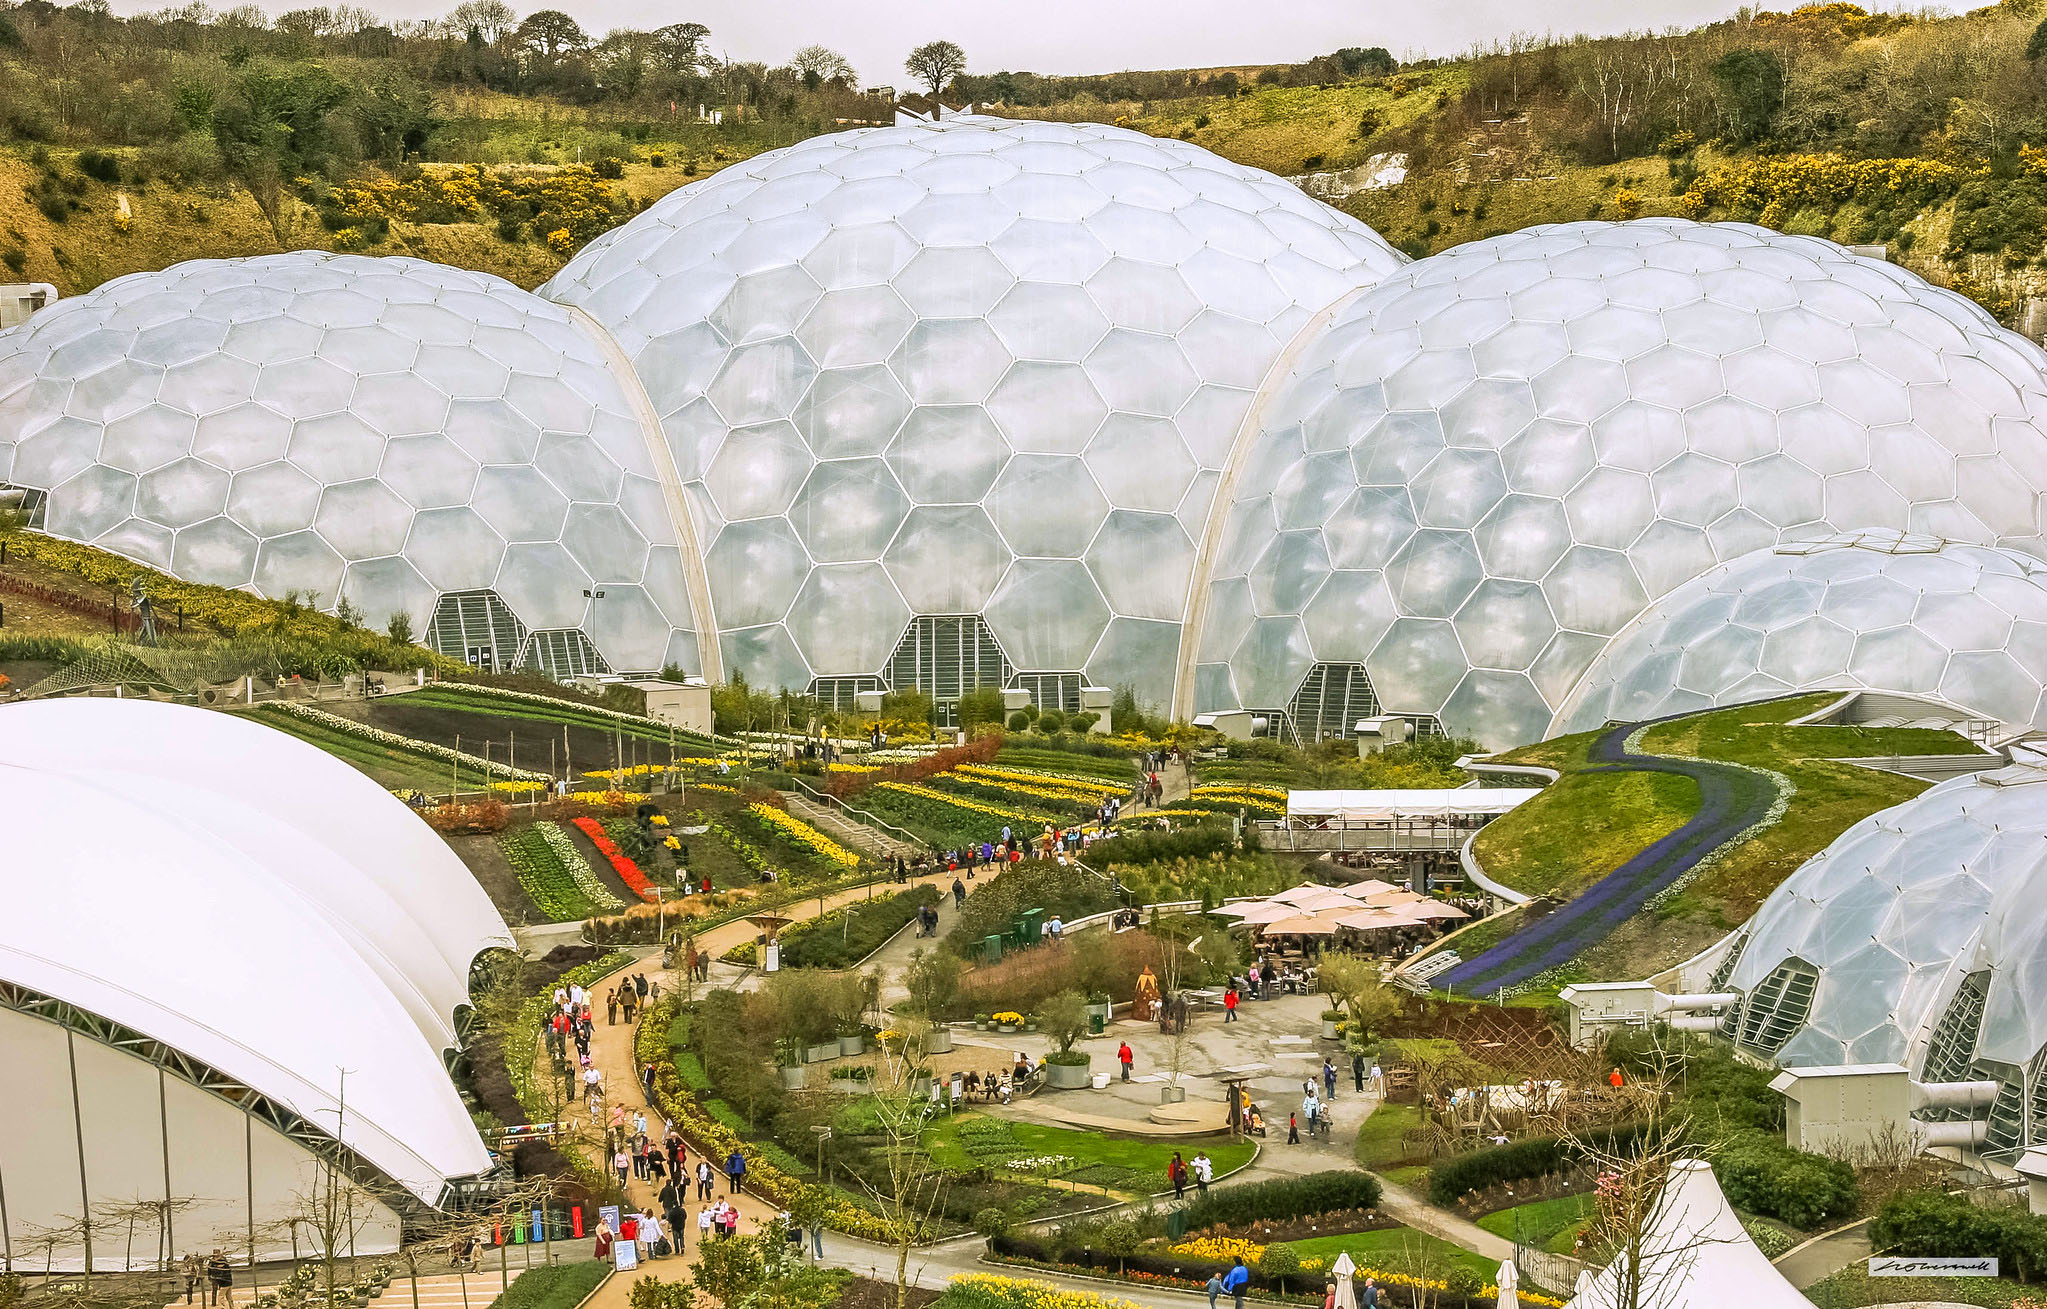 Eden Project, St. Austell in Cornwall by Neil Cresswell.jpg